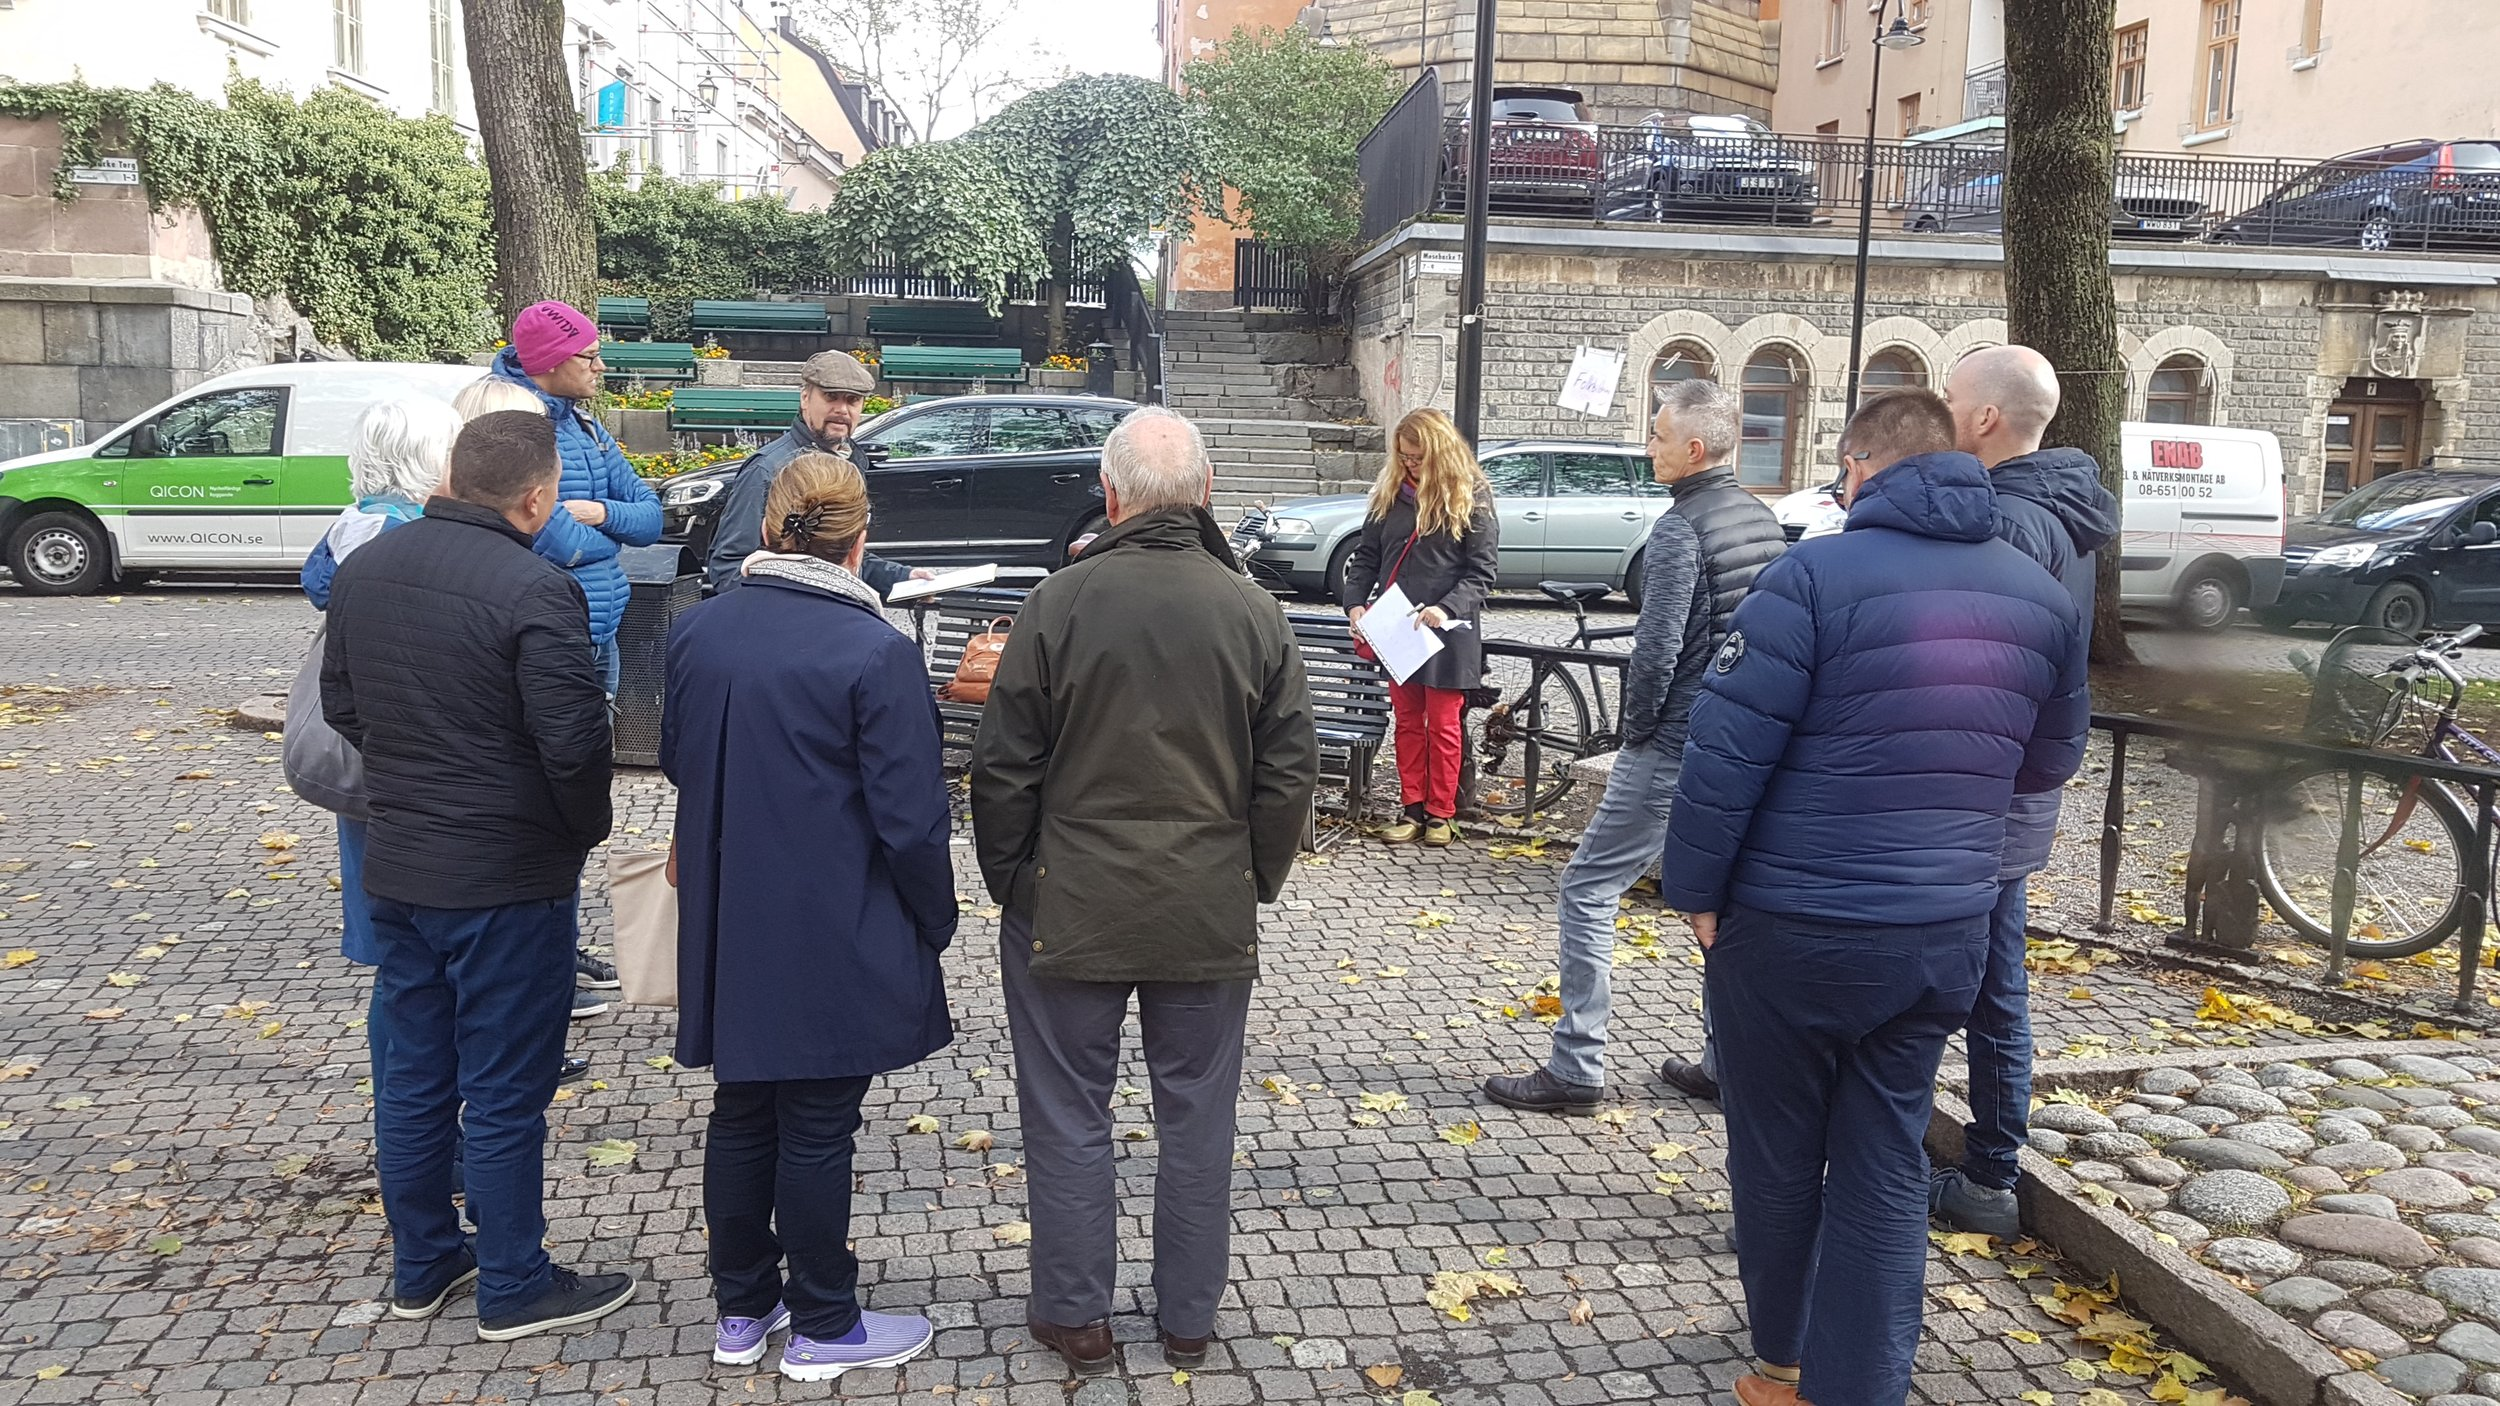 Touring Stockholm on foot.